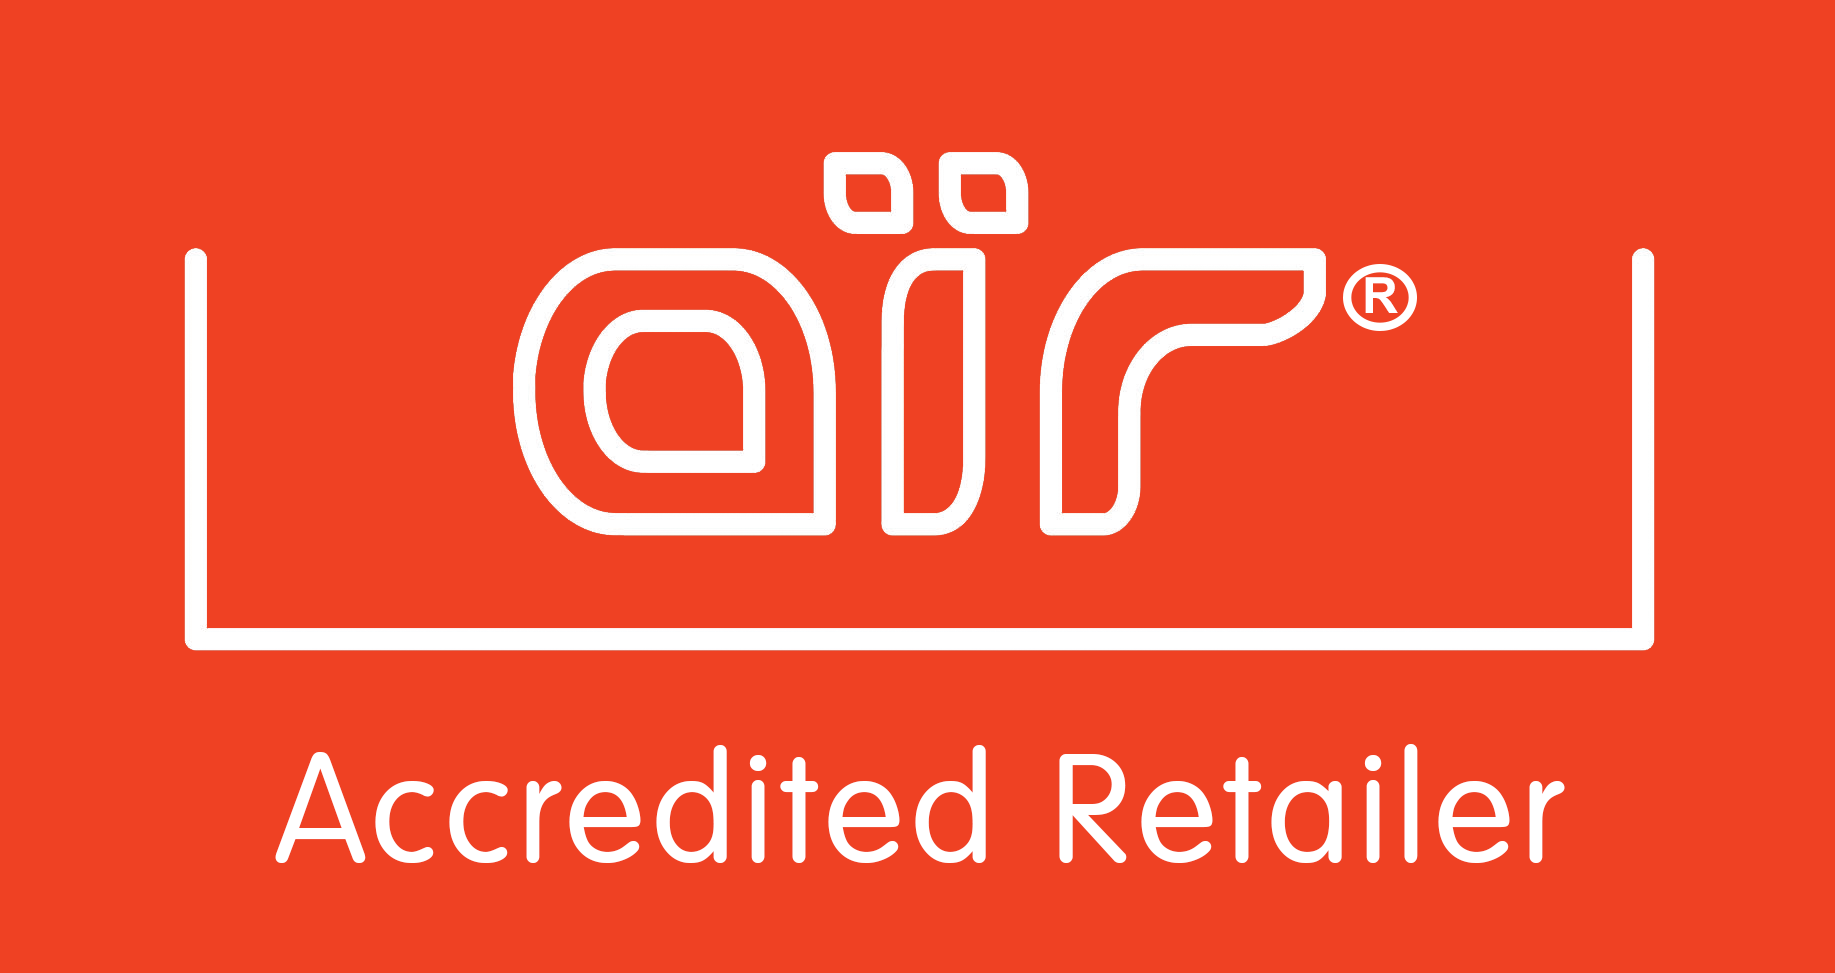 air Accredited Retailer logo